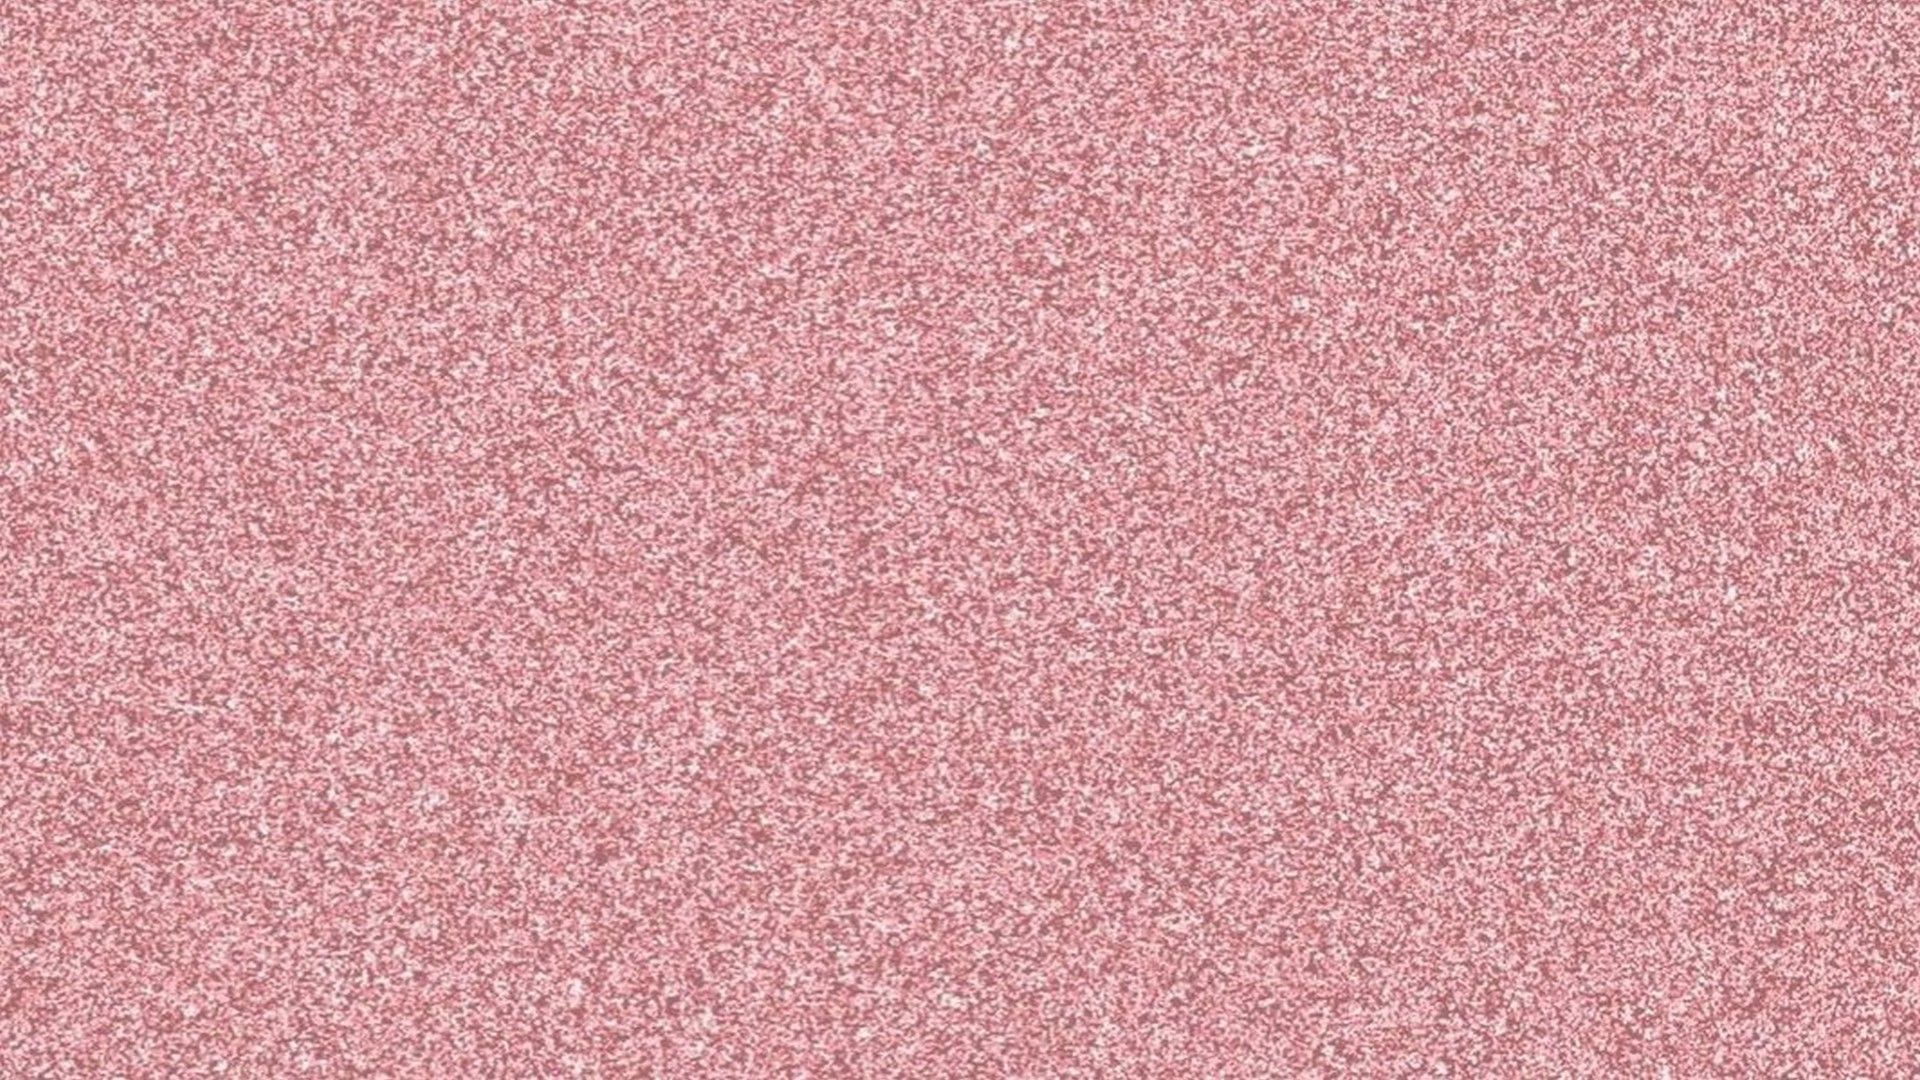 Glitter Aesthetic Tumblr Wallpapers Top Free Glitter Aesthetic